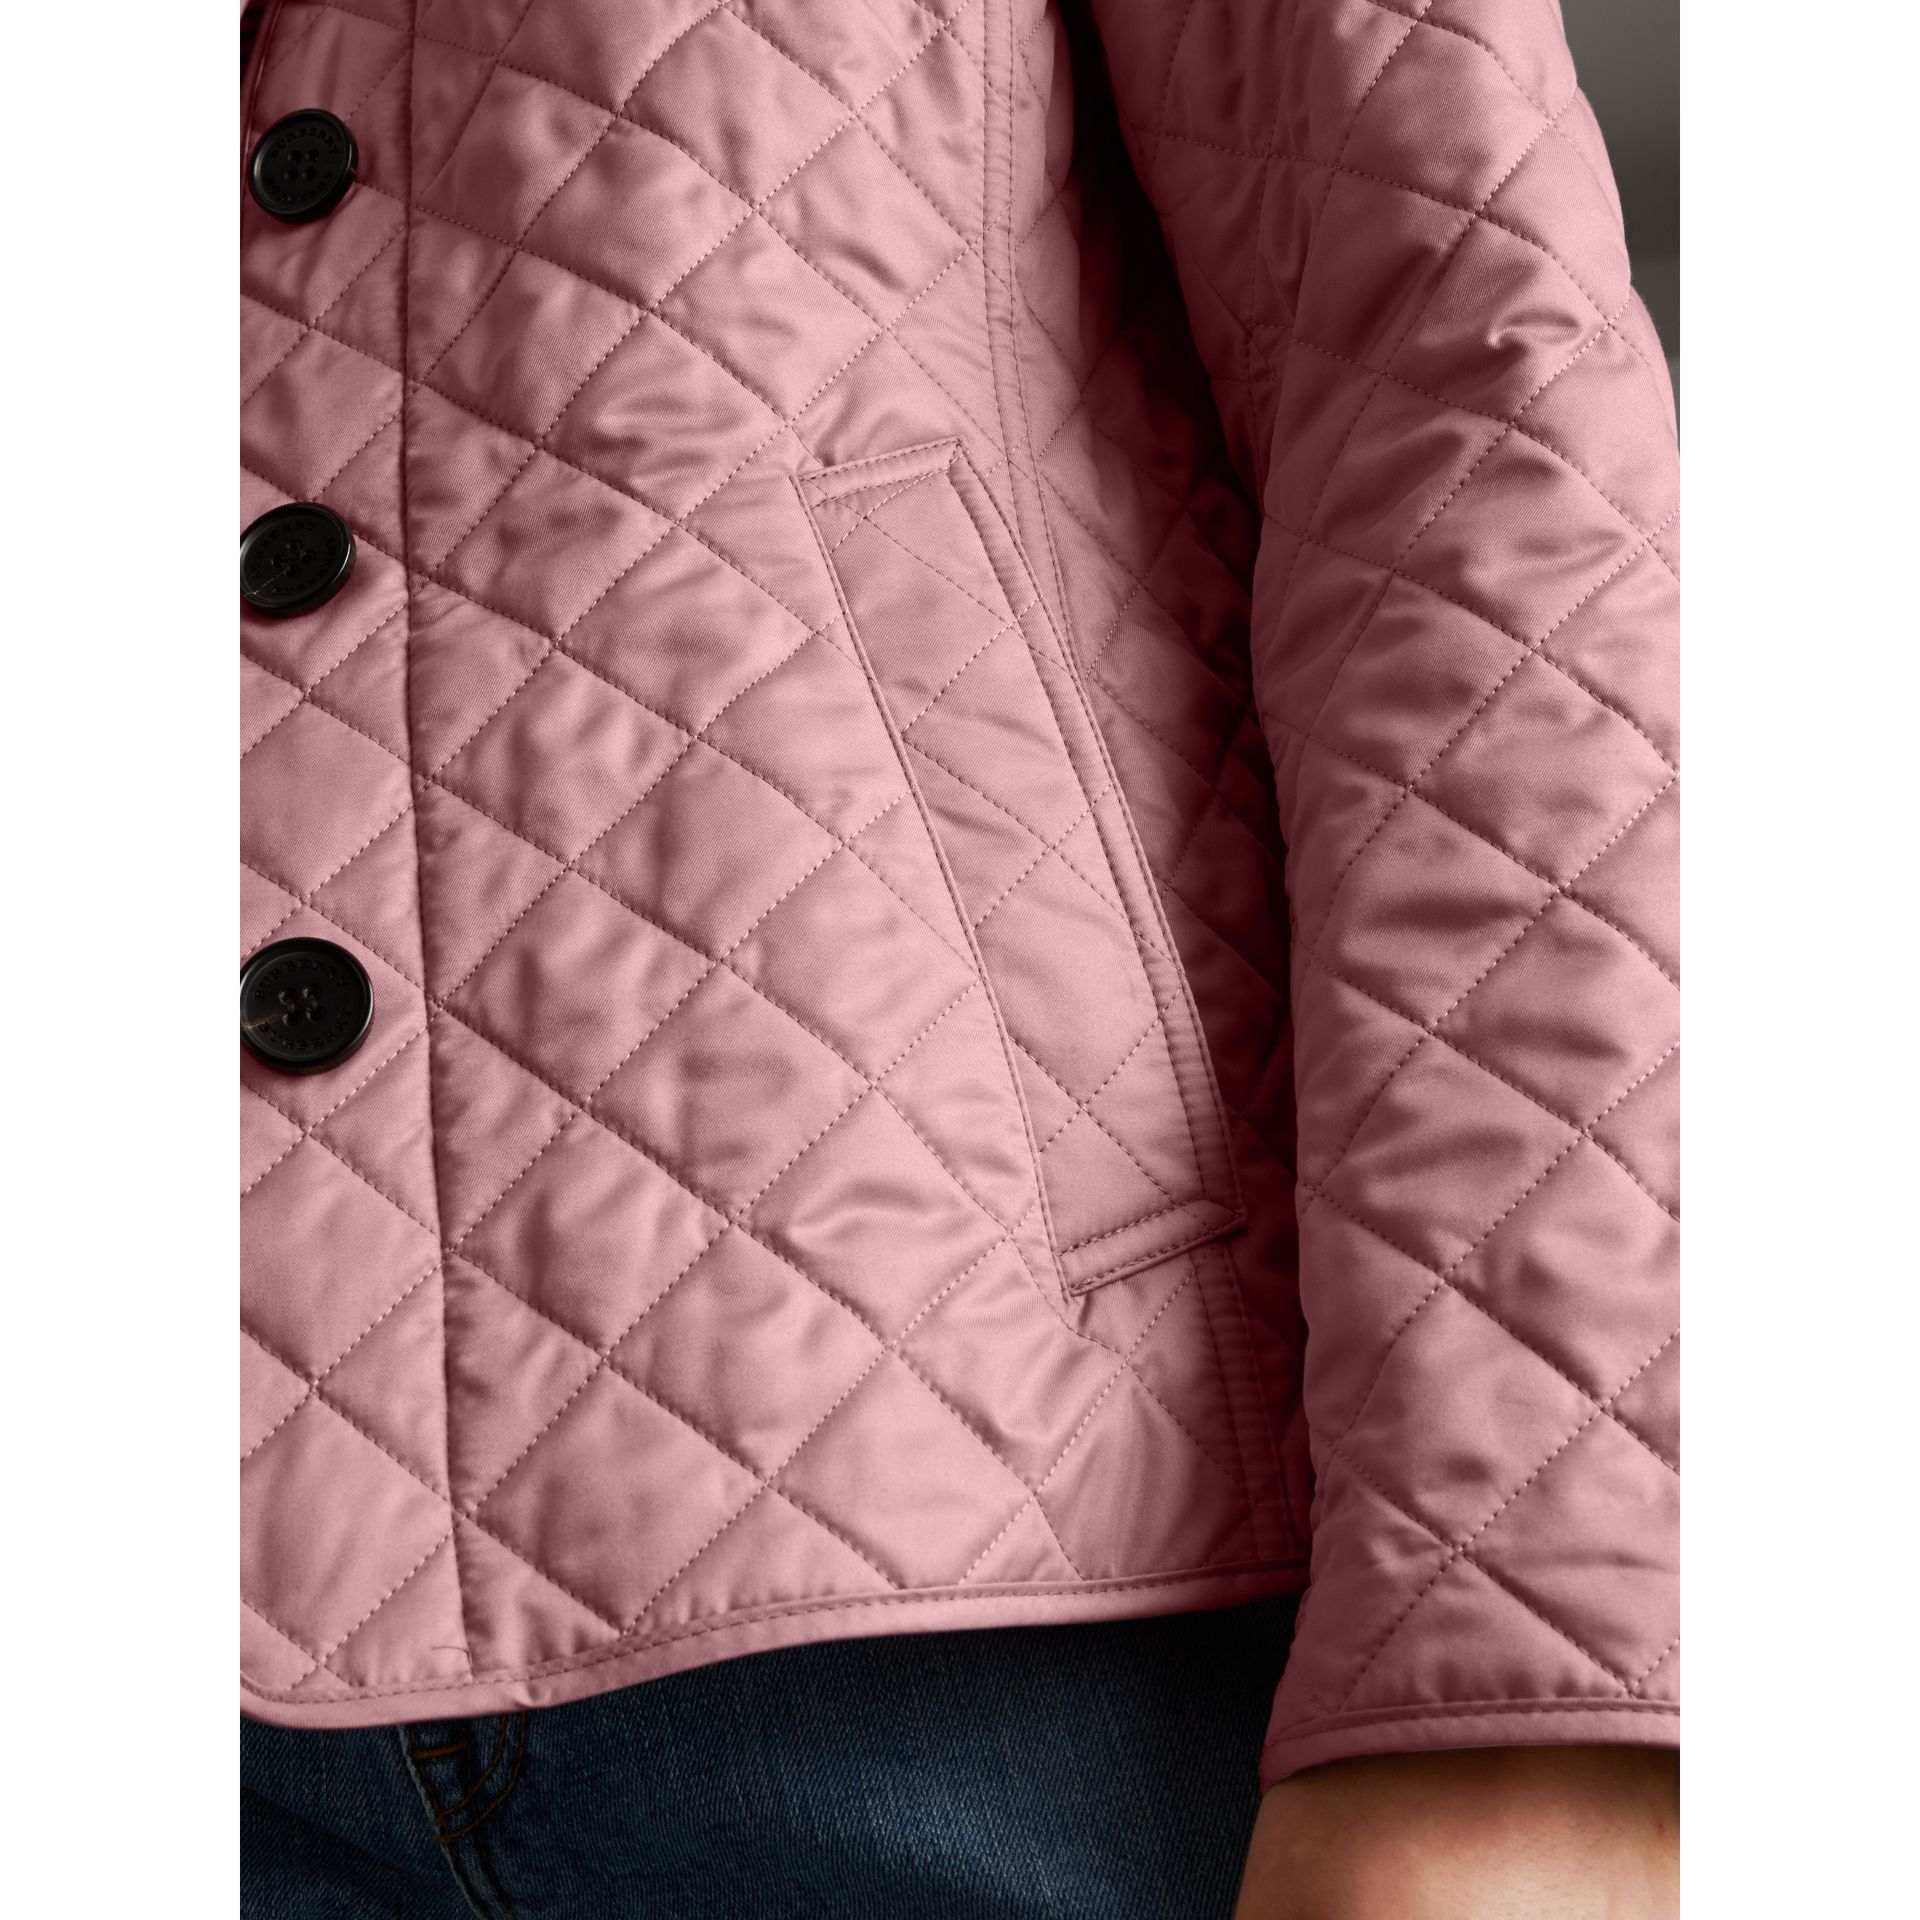 Diamond Quilted Jacket in Vintage Rose - Women | Burberry Australia - gallery image 5